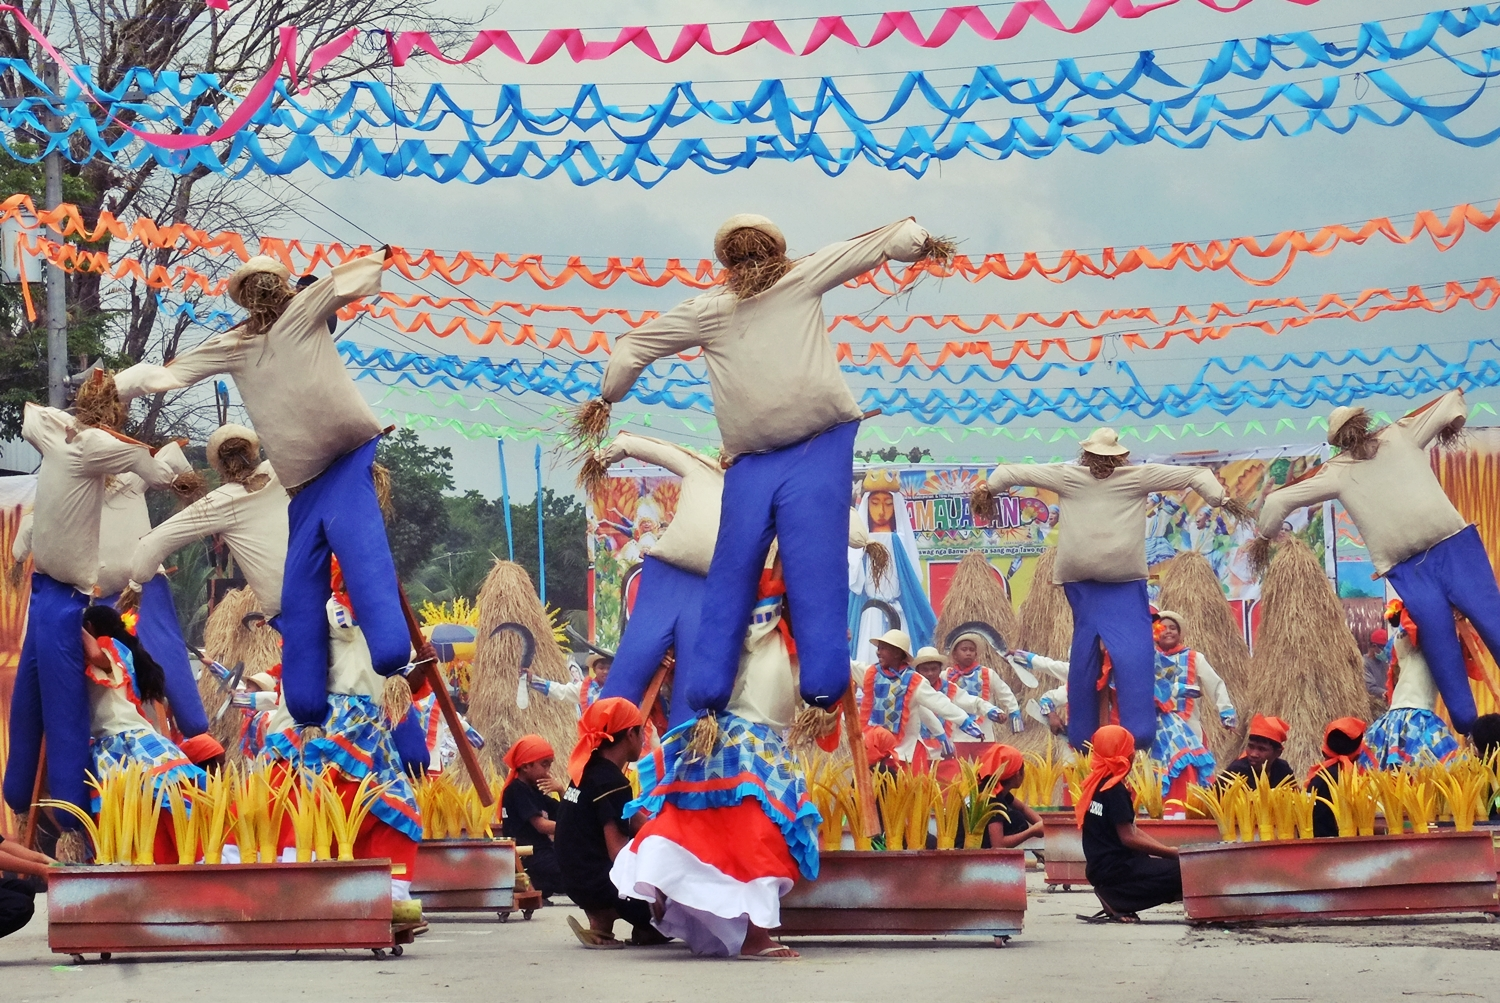 Kamayadan Festival: A colorful celebration of good harvest, culture